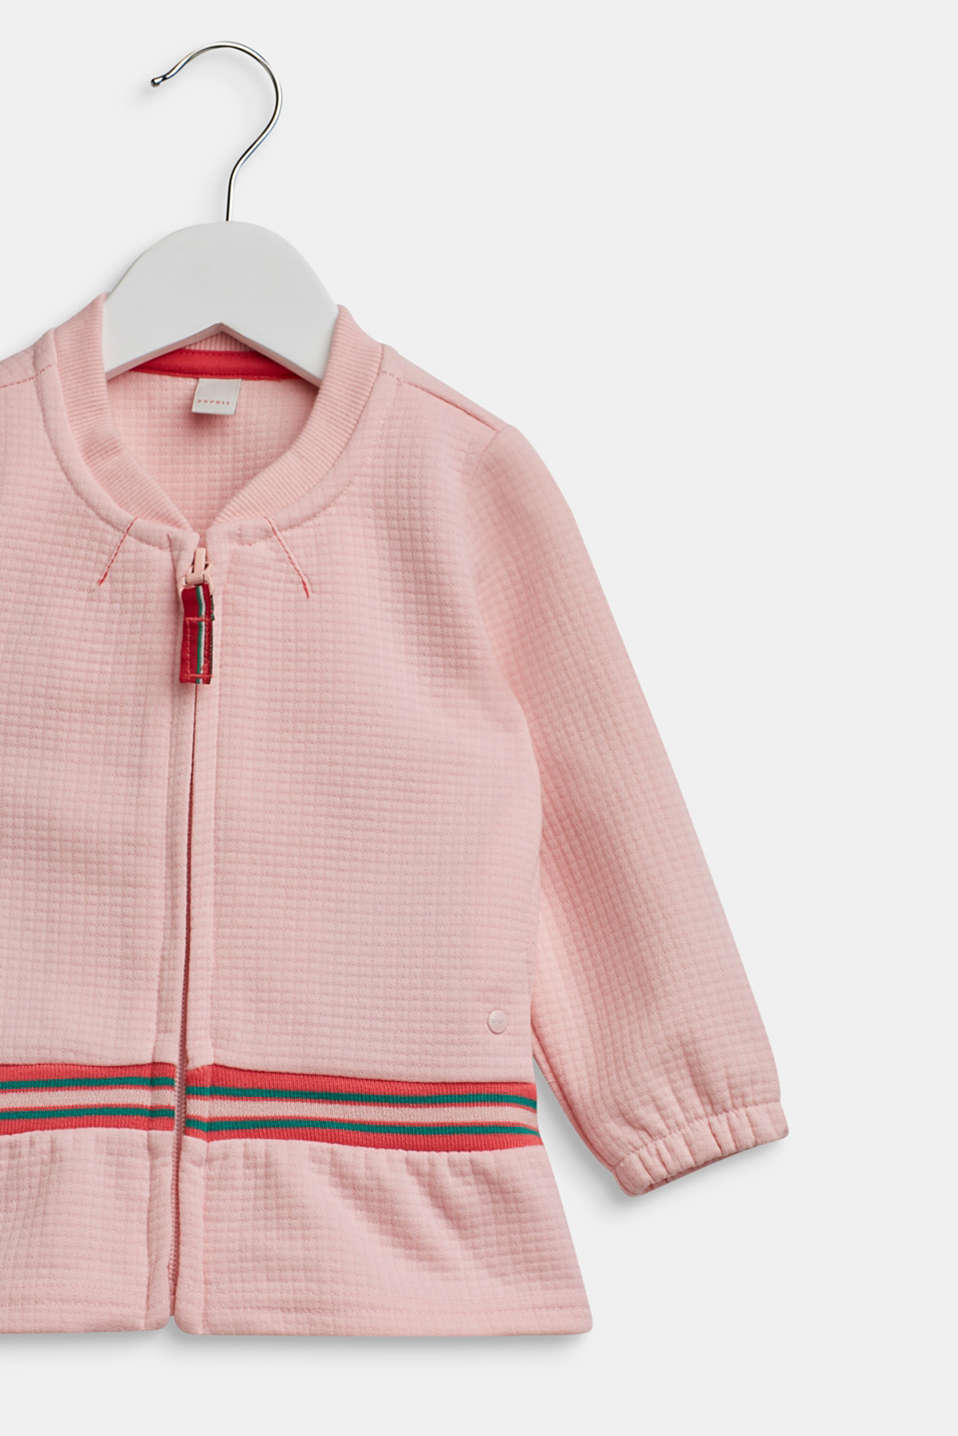 Sweatshirt cardigan with contrasting stripes, TINTED ROSE, detail image number 2